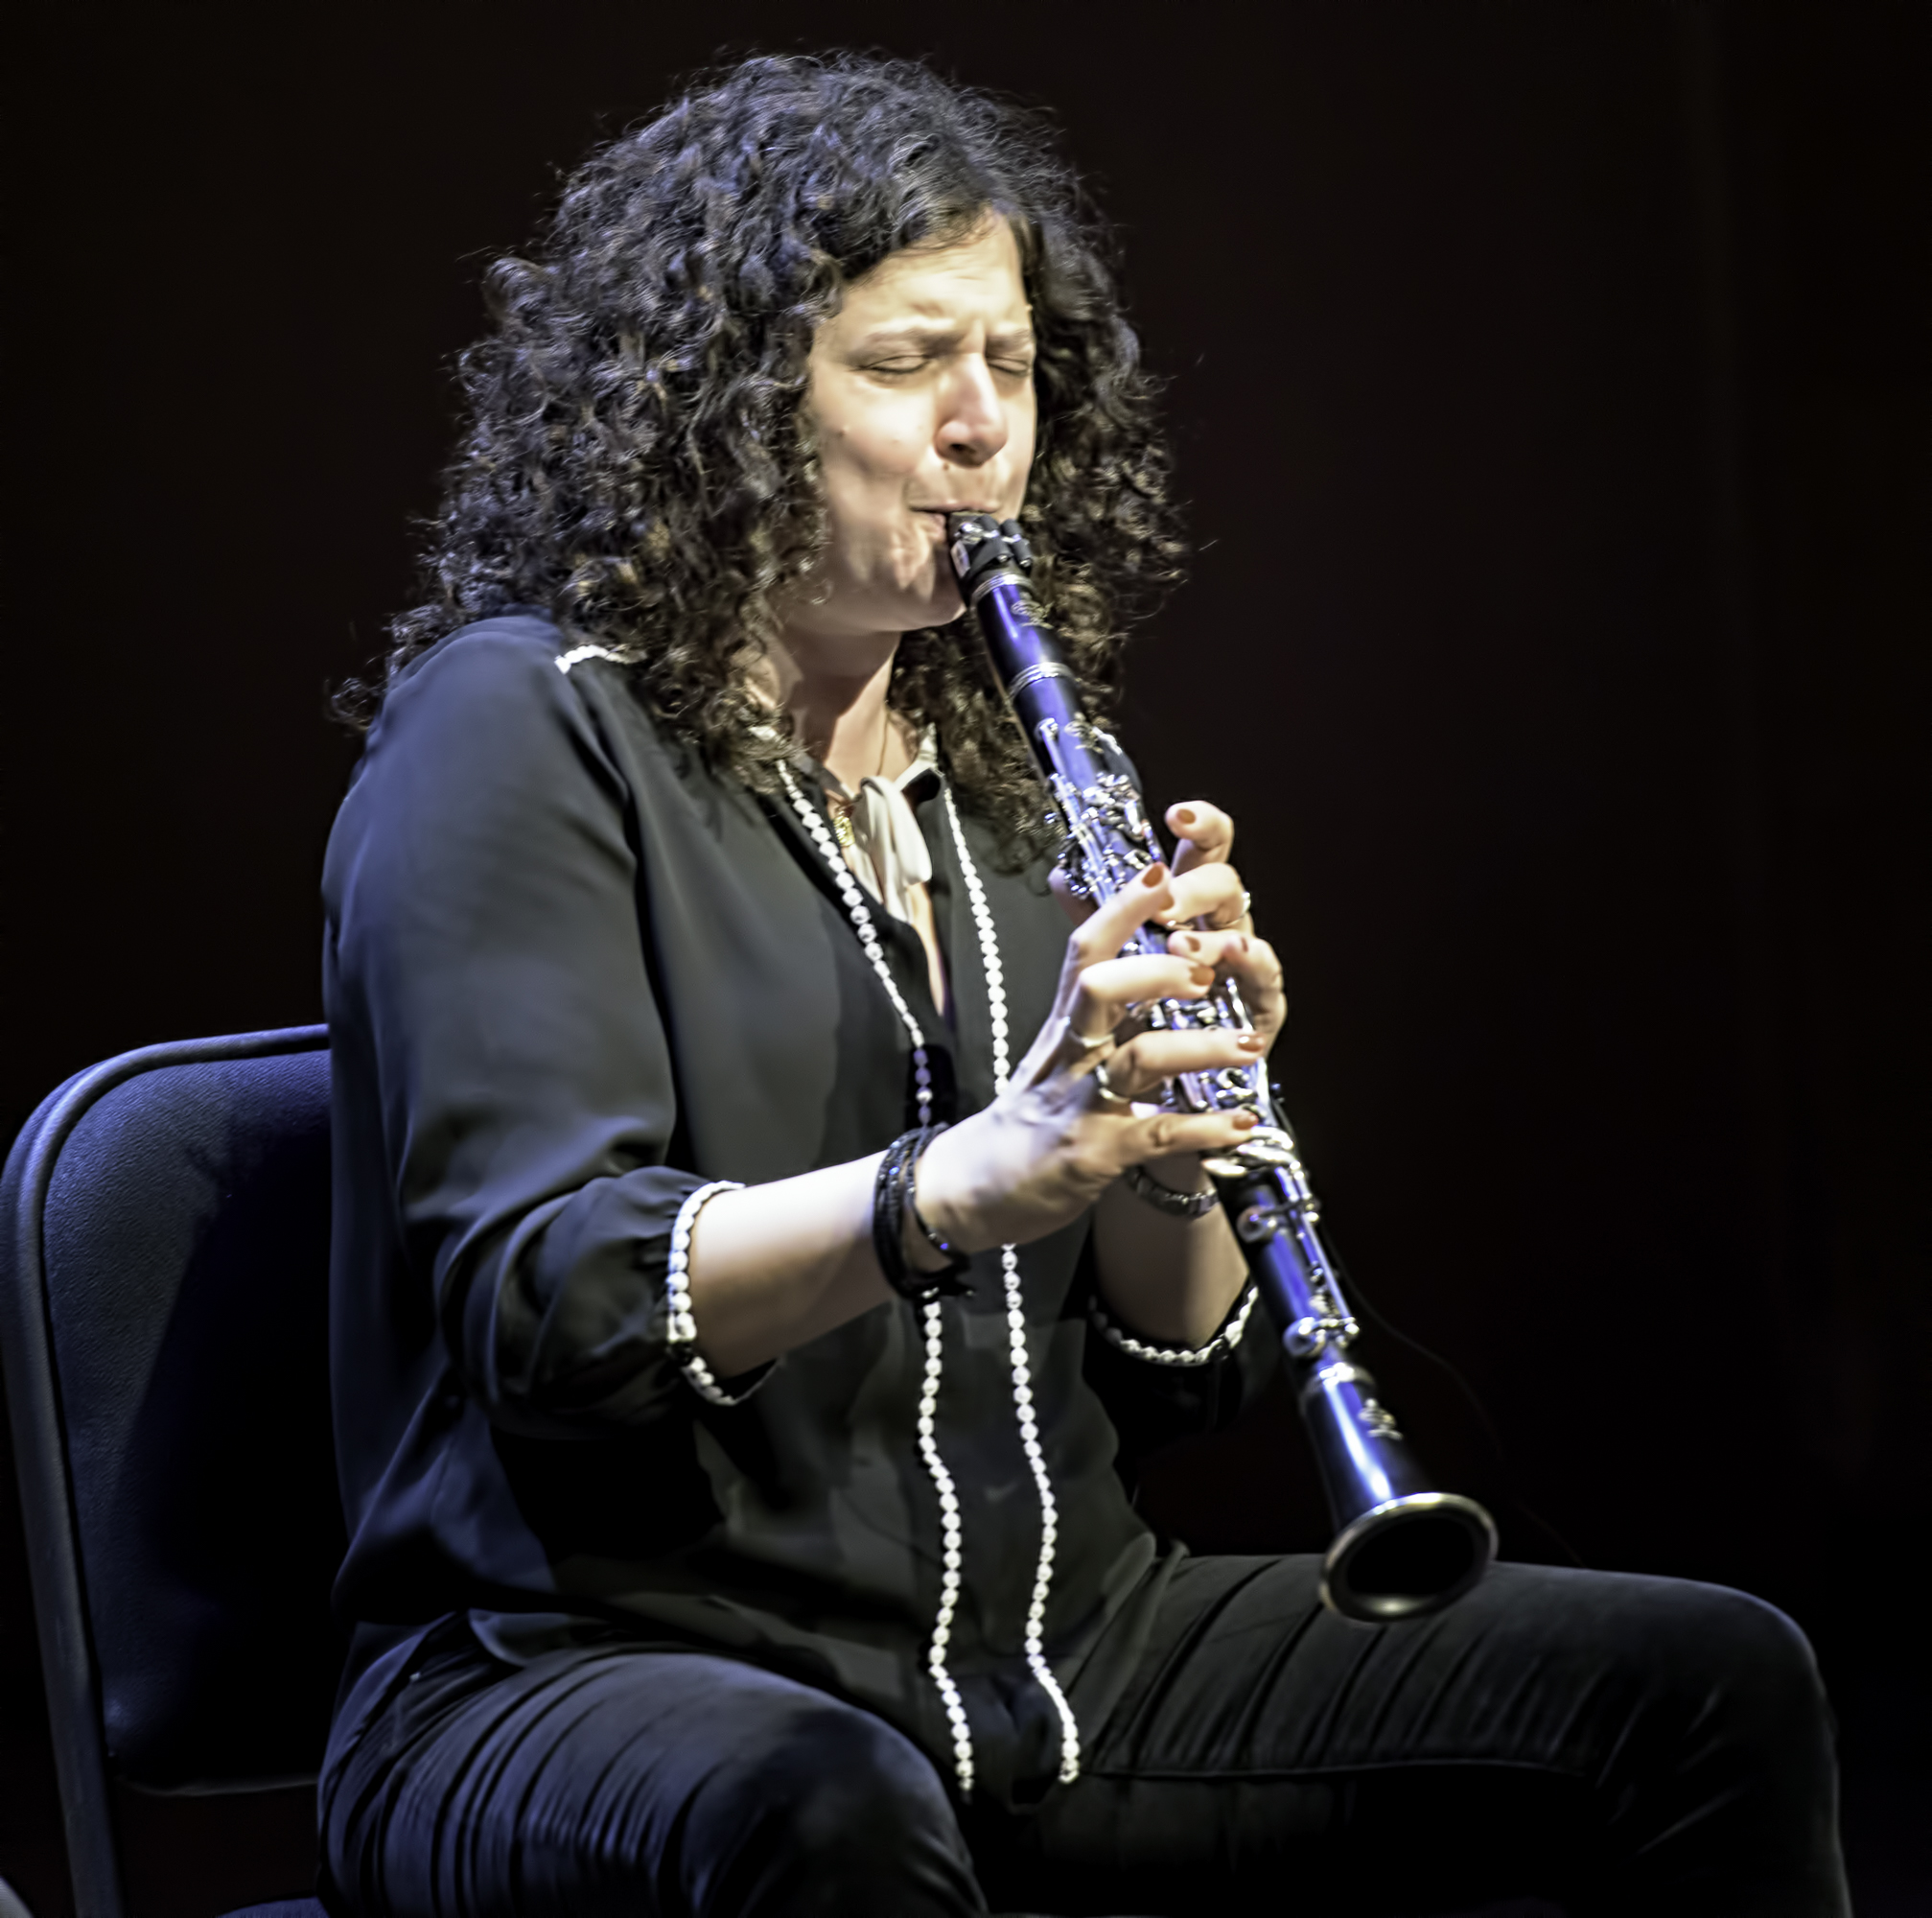 Anat Cohen With Trio Brasileiro At The Musical Instrument Museum (mim) In Phoenix